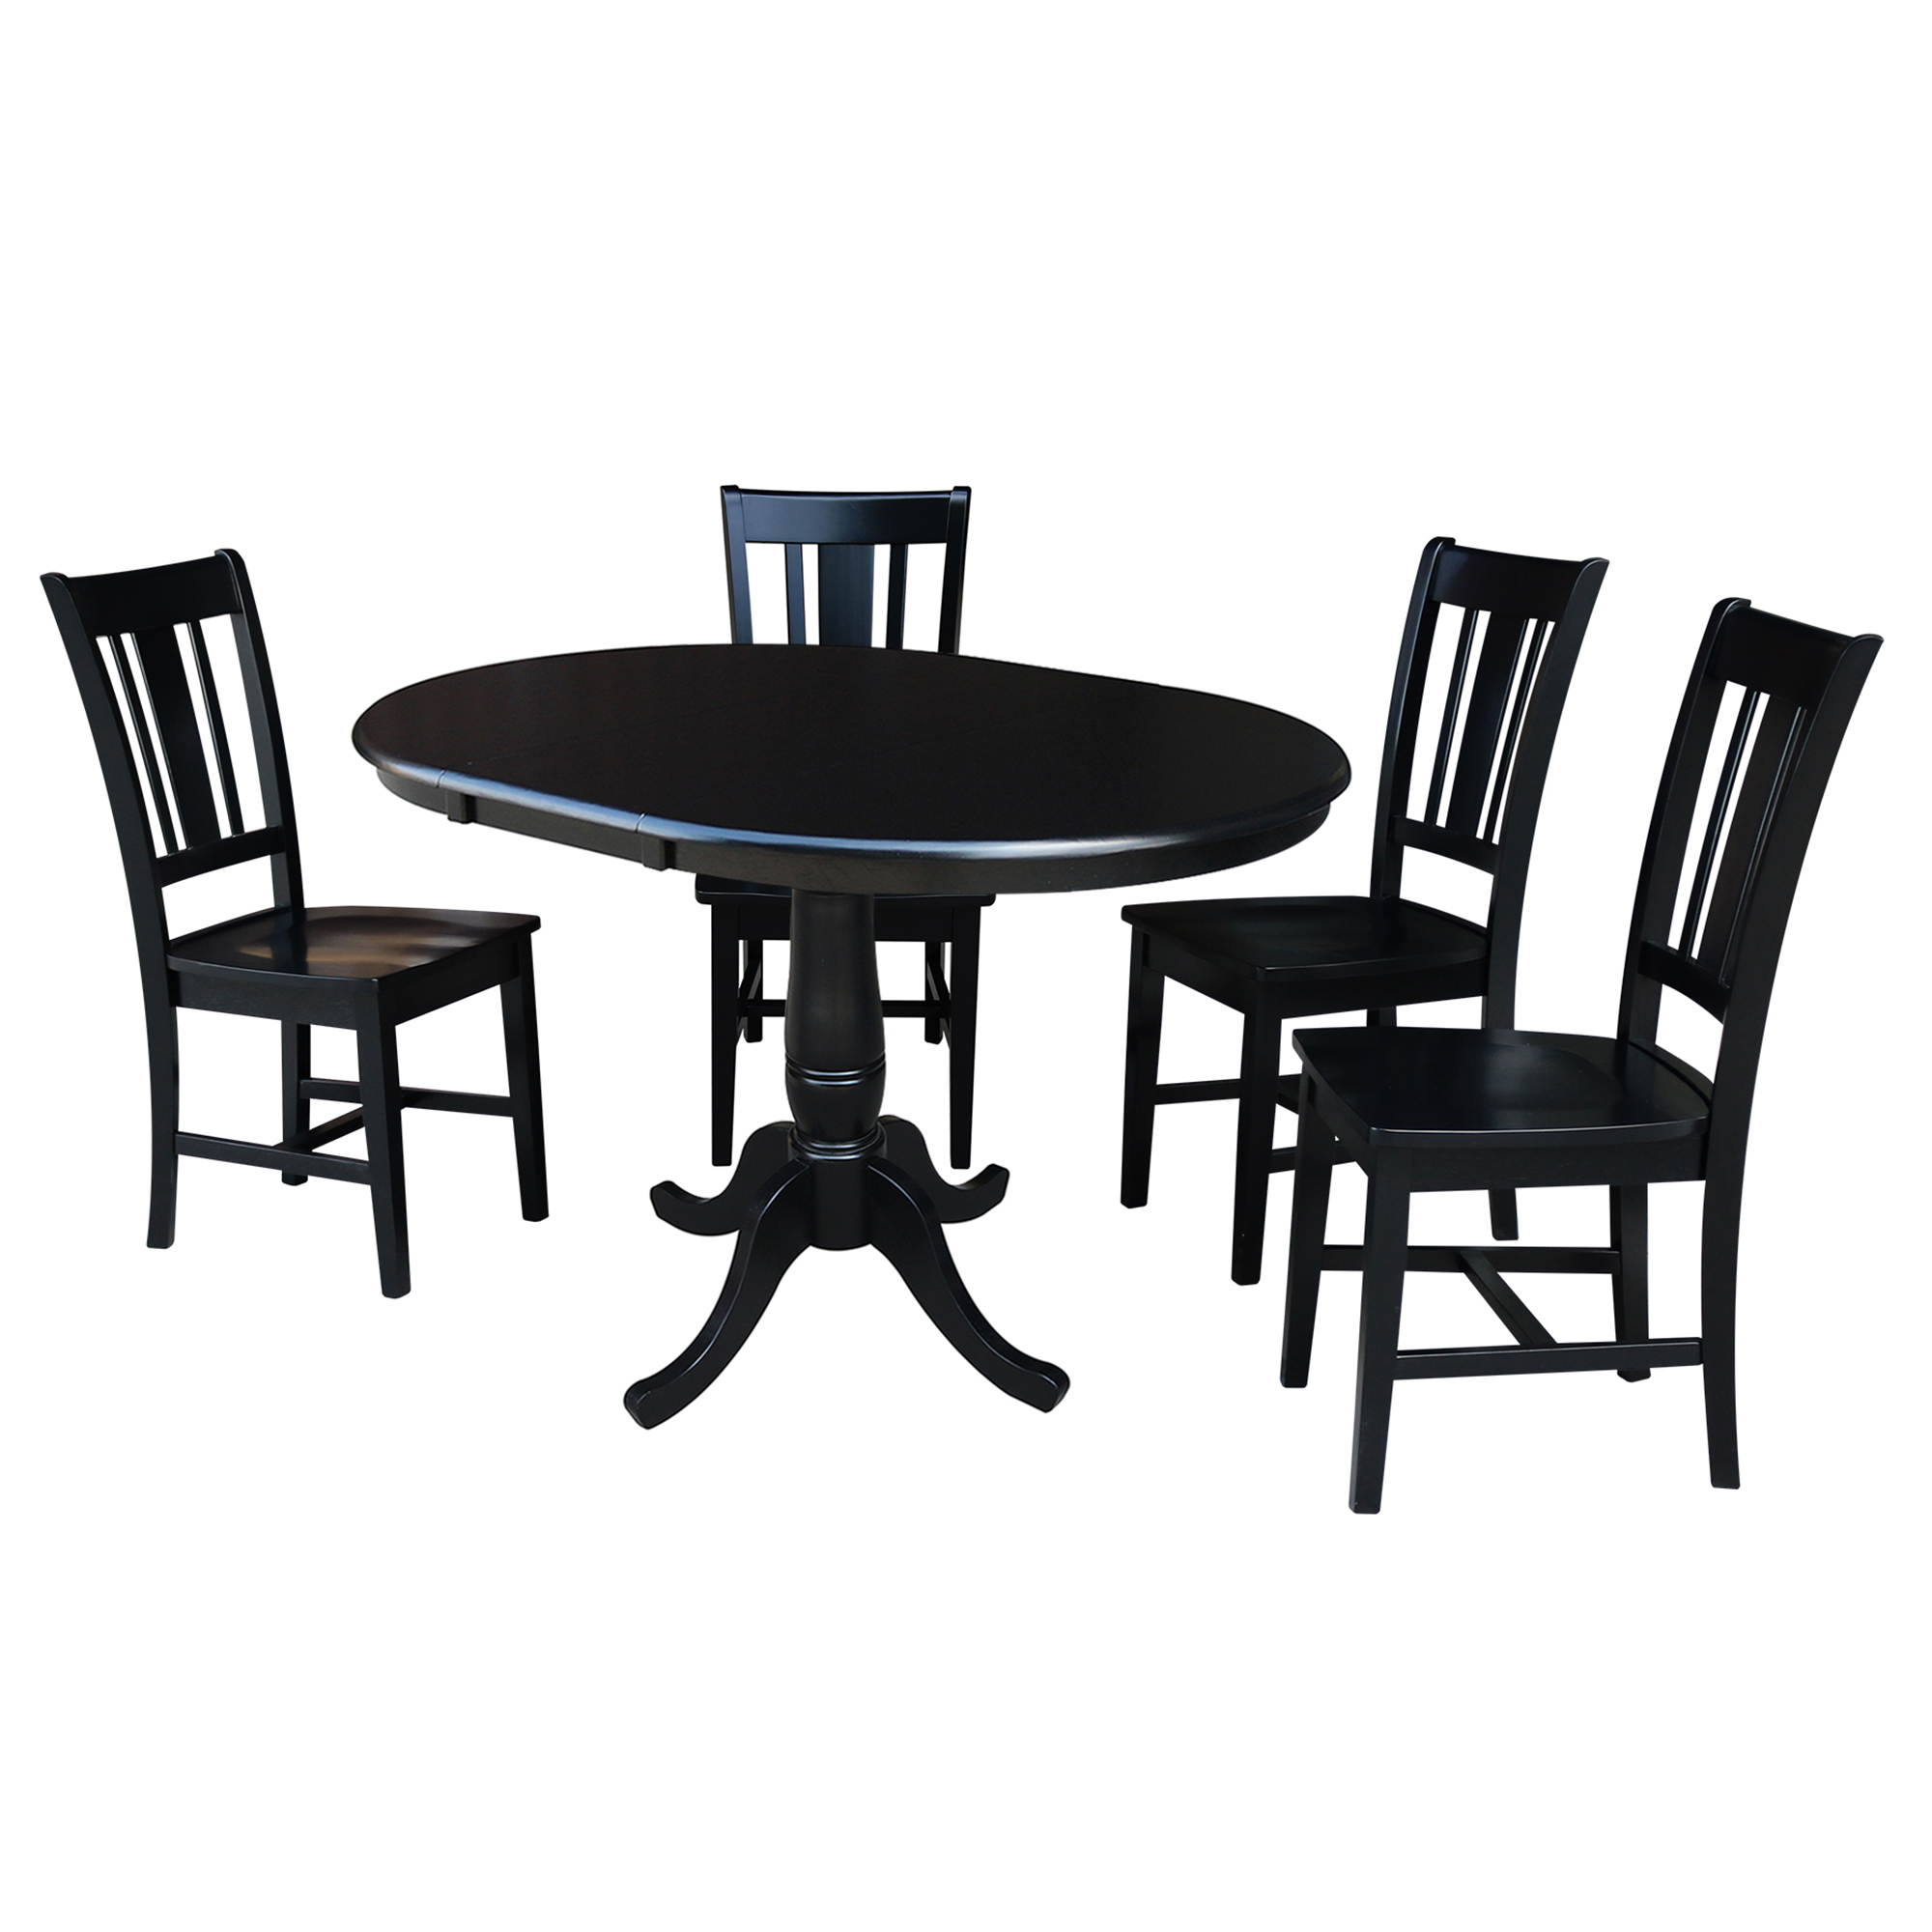 "Large Round Dining Table Seats 12: 36"" Round Dining Table With 12"" Leaf And 4 San Remo Chairs"